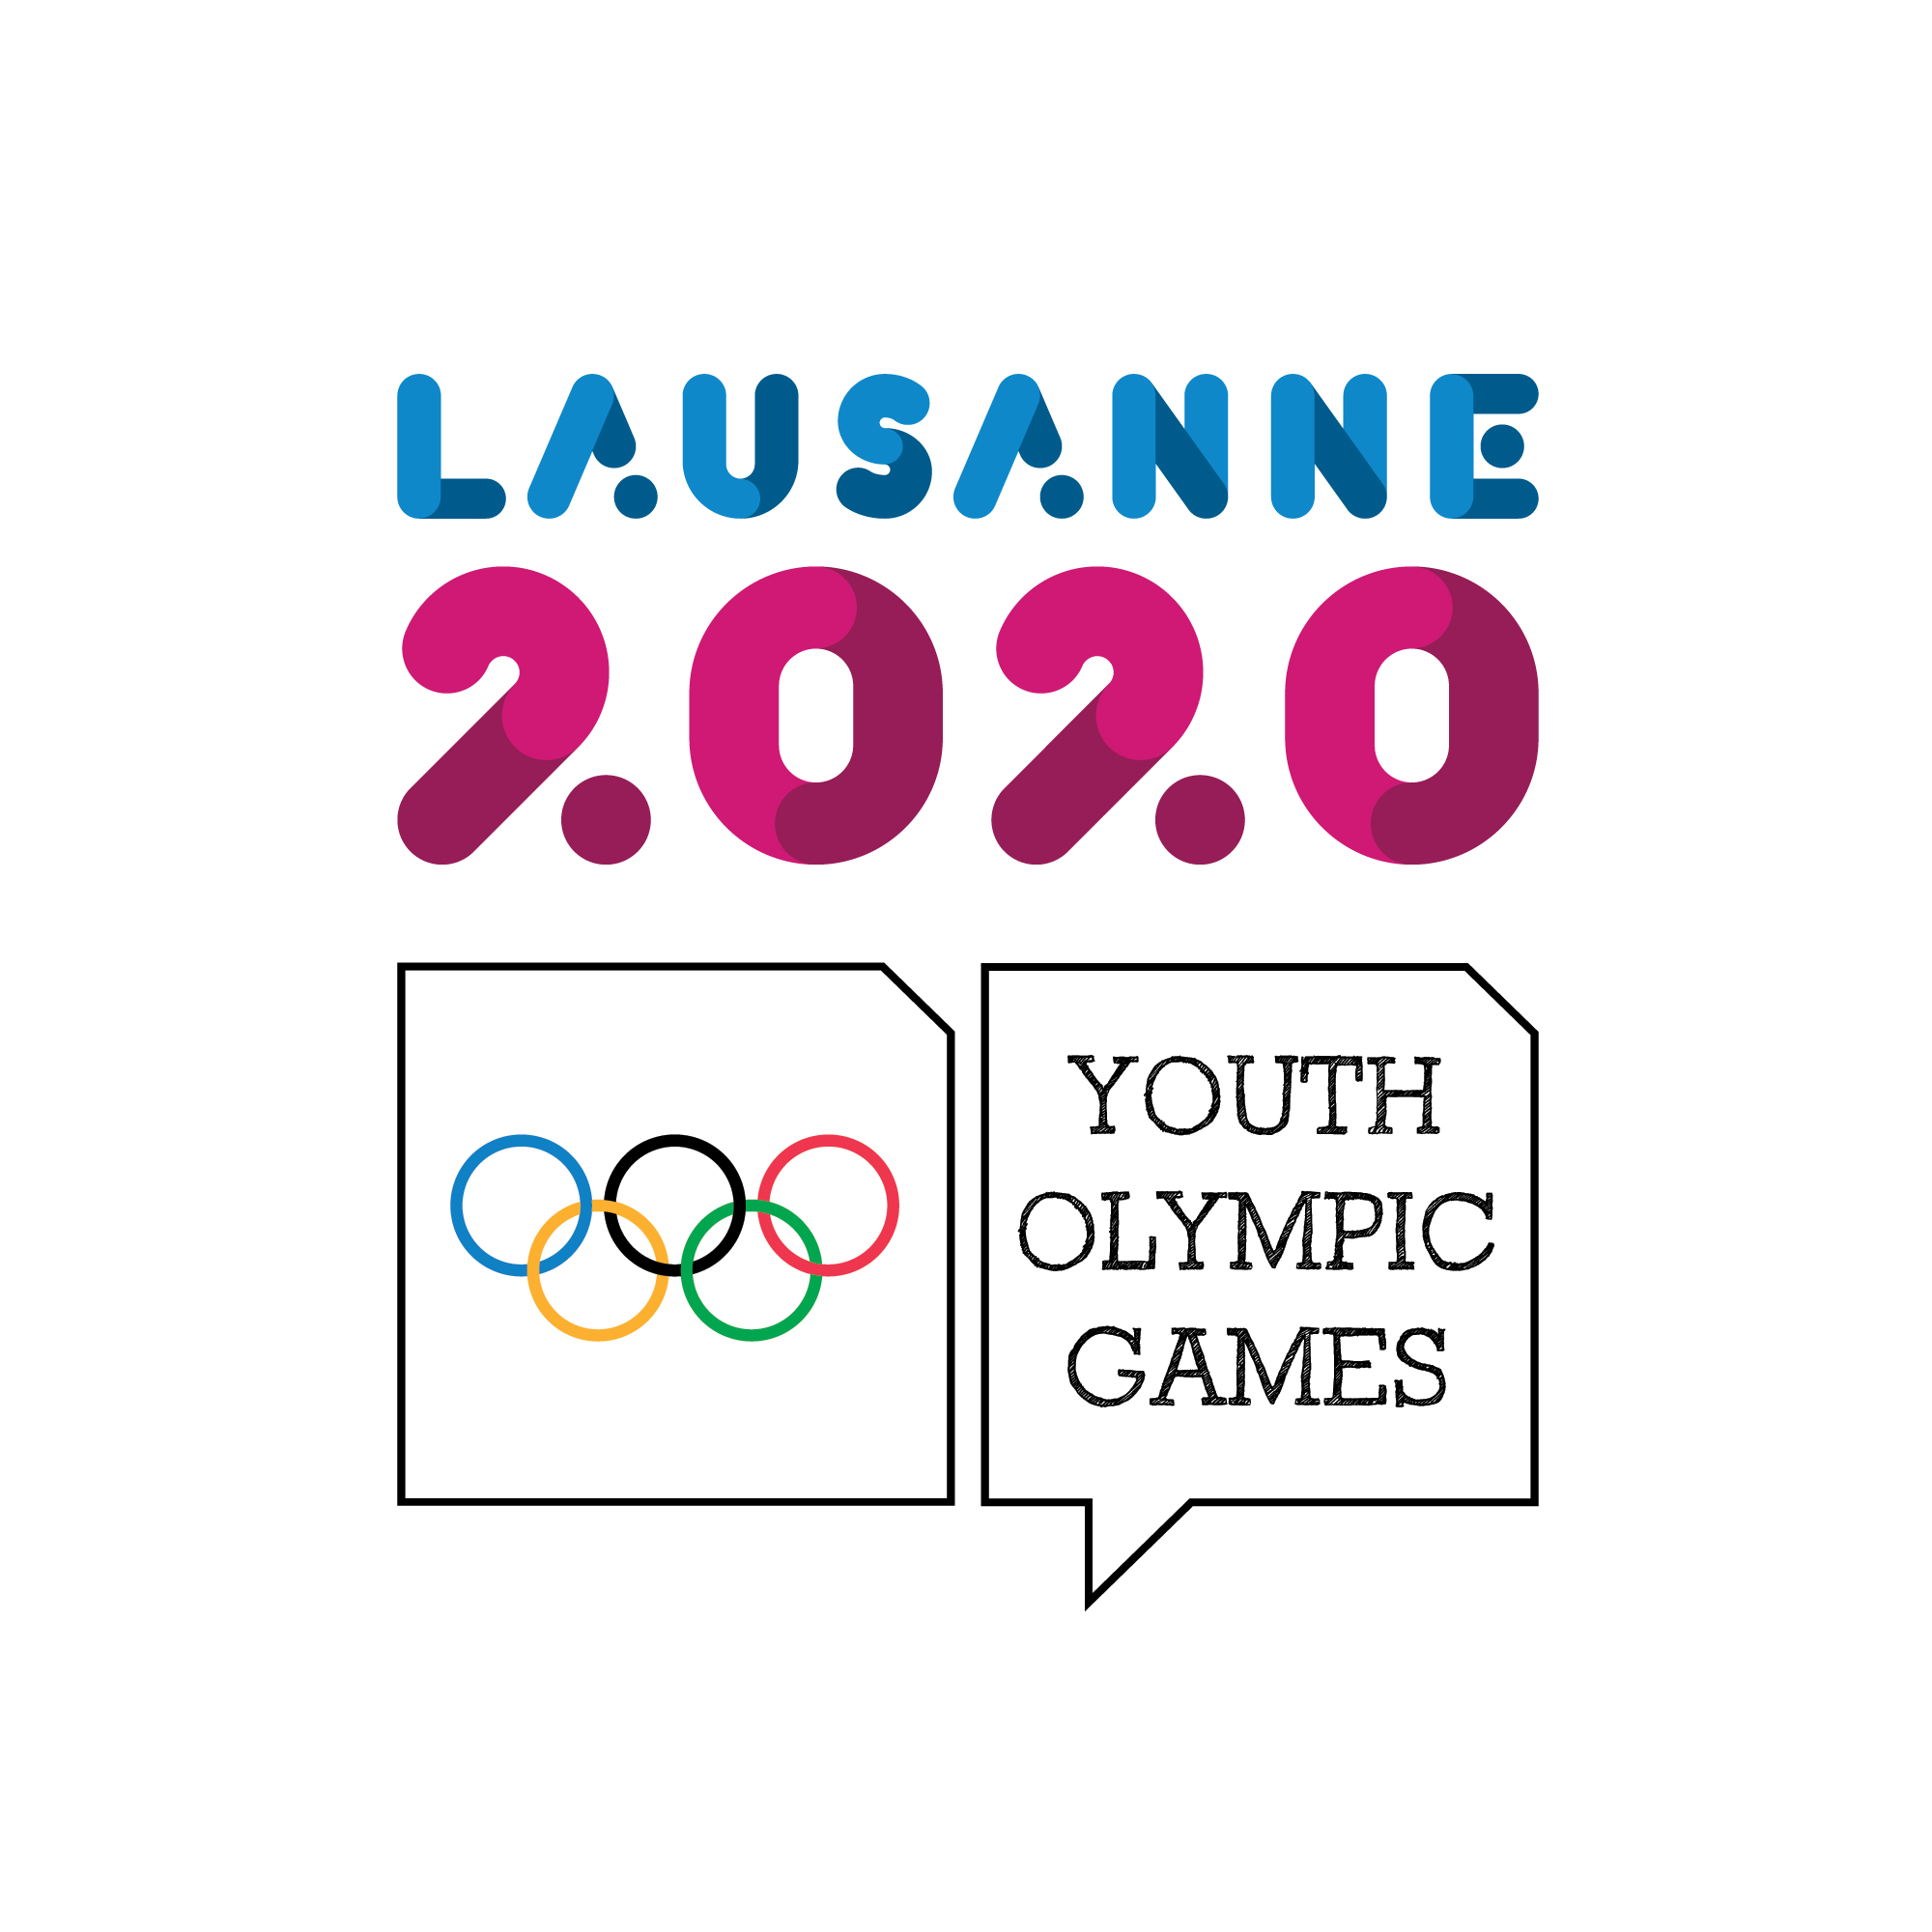 Winter Olympic 2020.Youth Olympic Games 2020 World Curling Federation